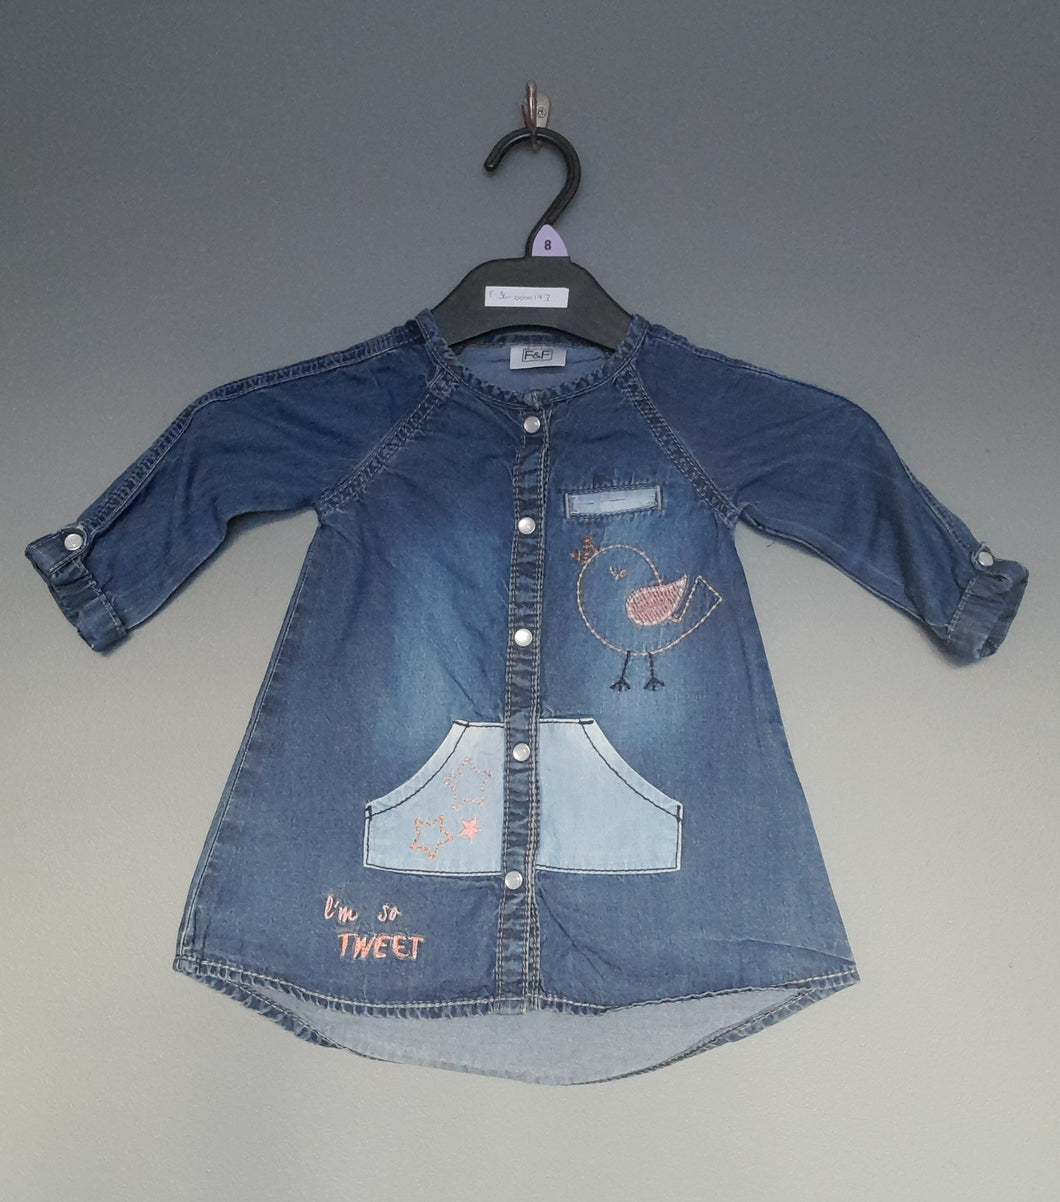 3-6 months Denim shirt dress - F&F